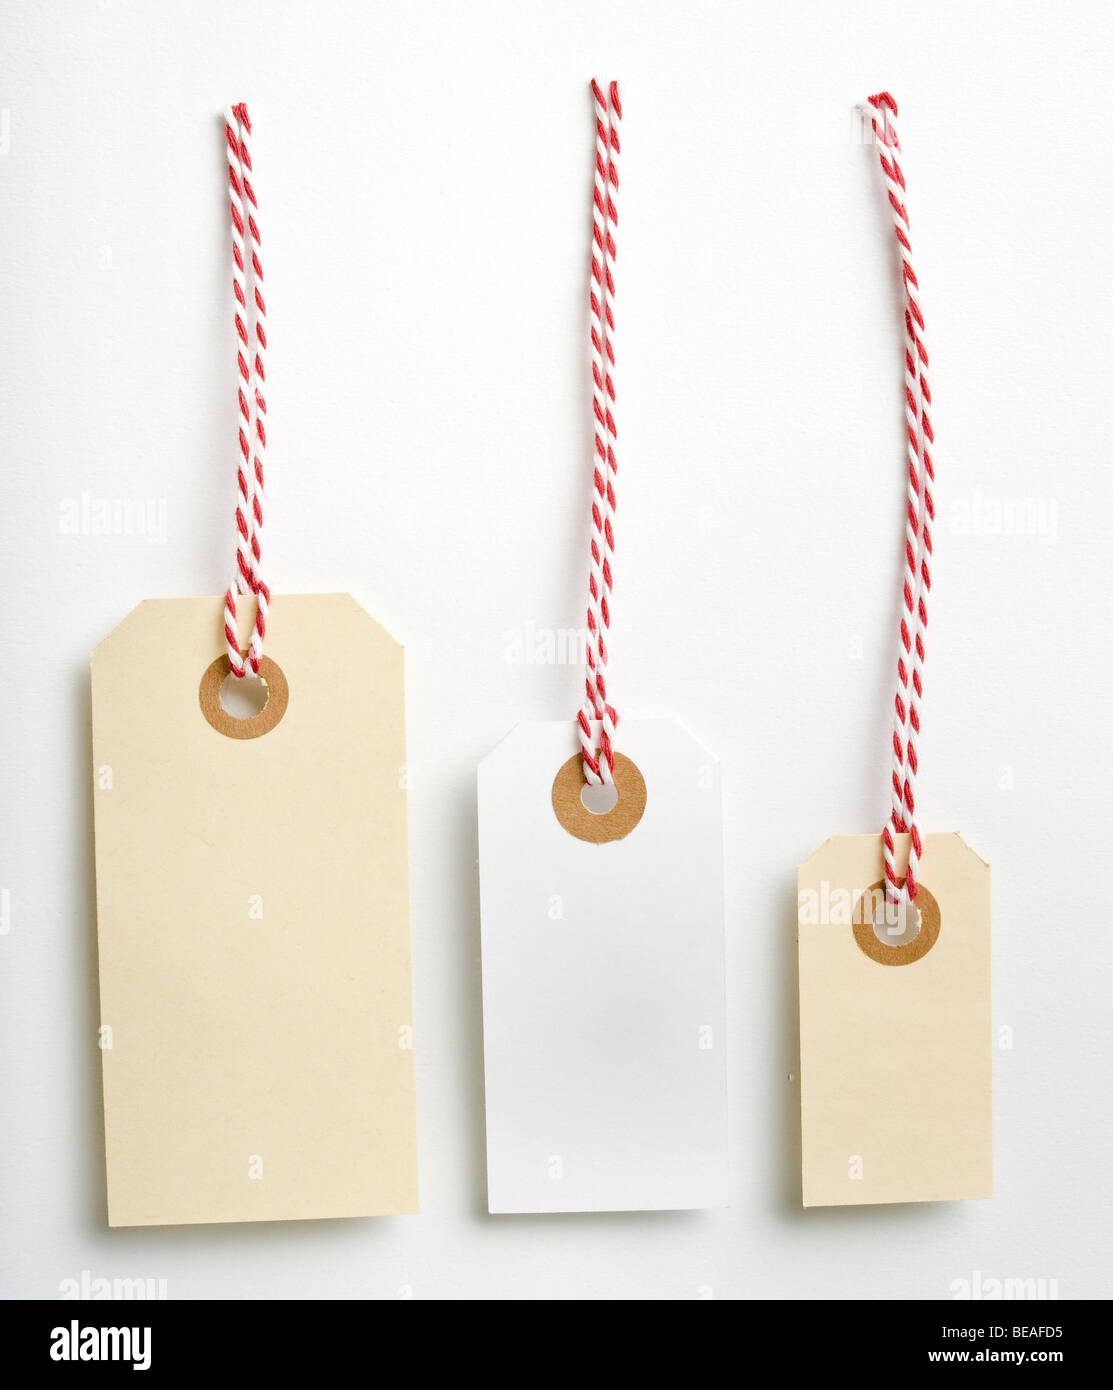 Three labels with a red and white rope isolated on white - Stock Image